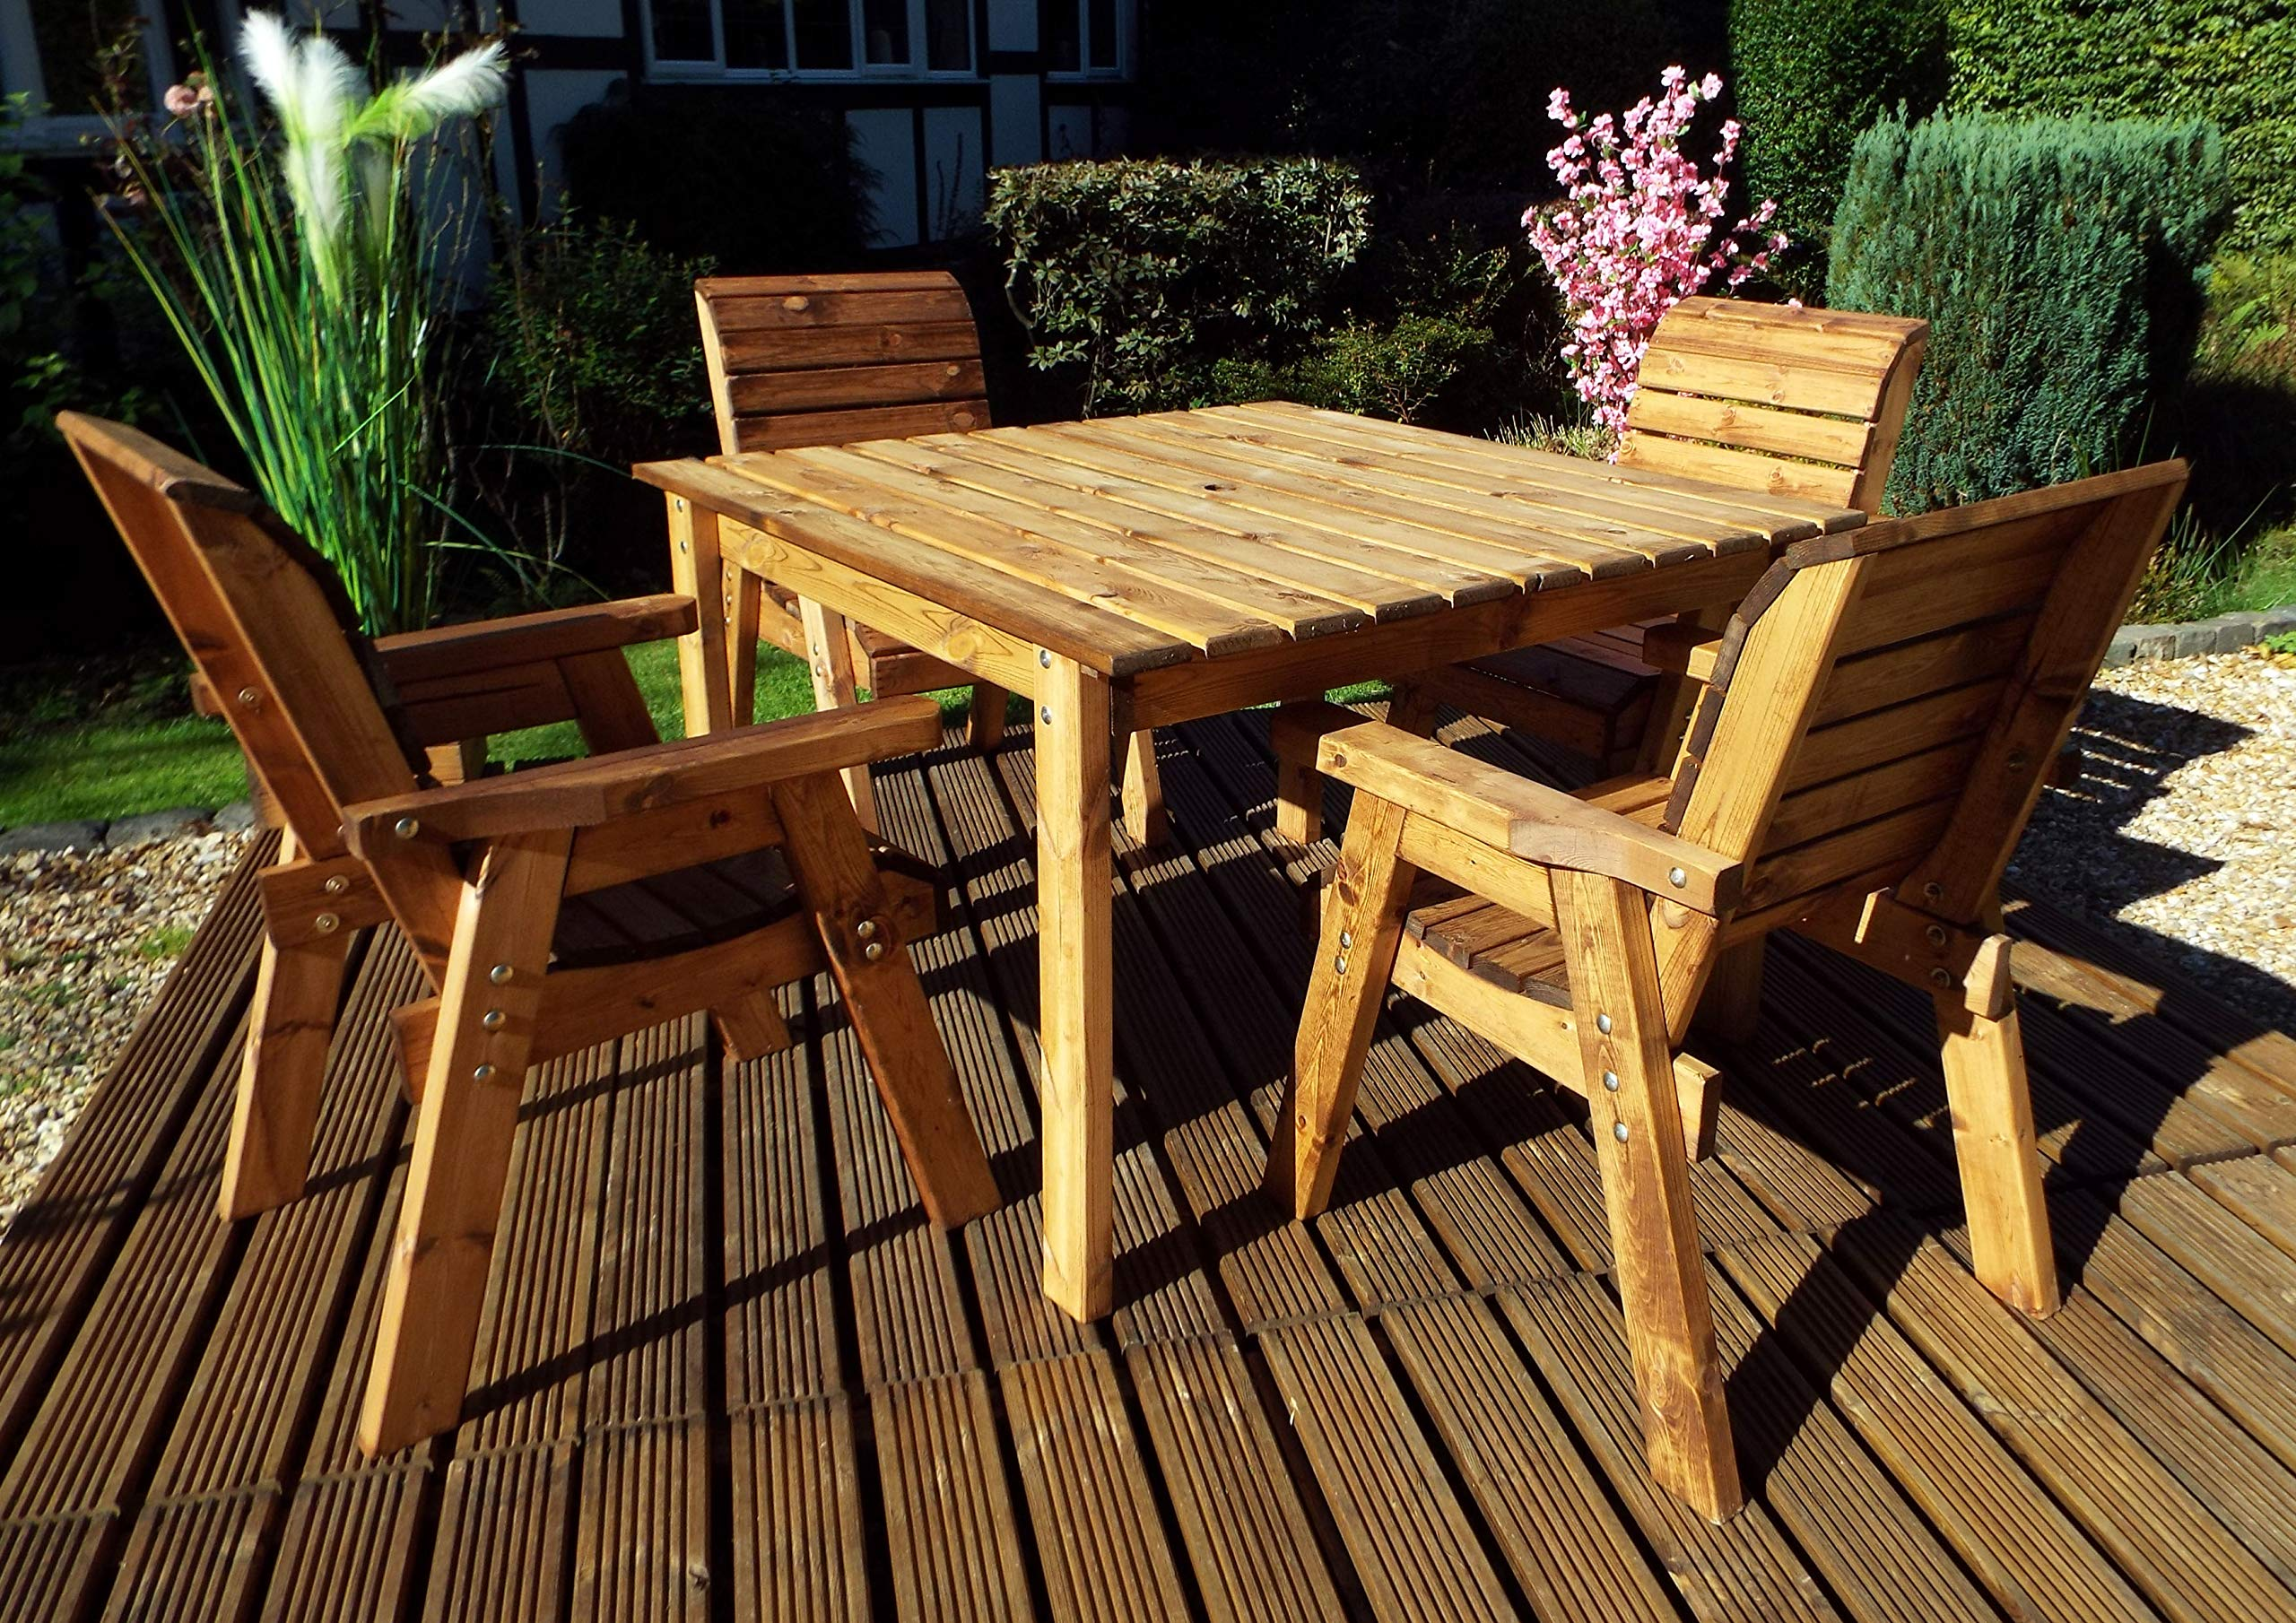 Charles Taylor Trading Hand Made Rustic Wooden Deluxe Garden Furniture 9  Seater Square Table Set